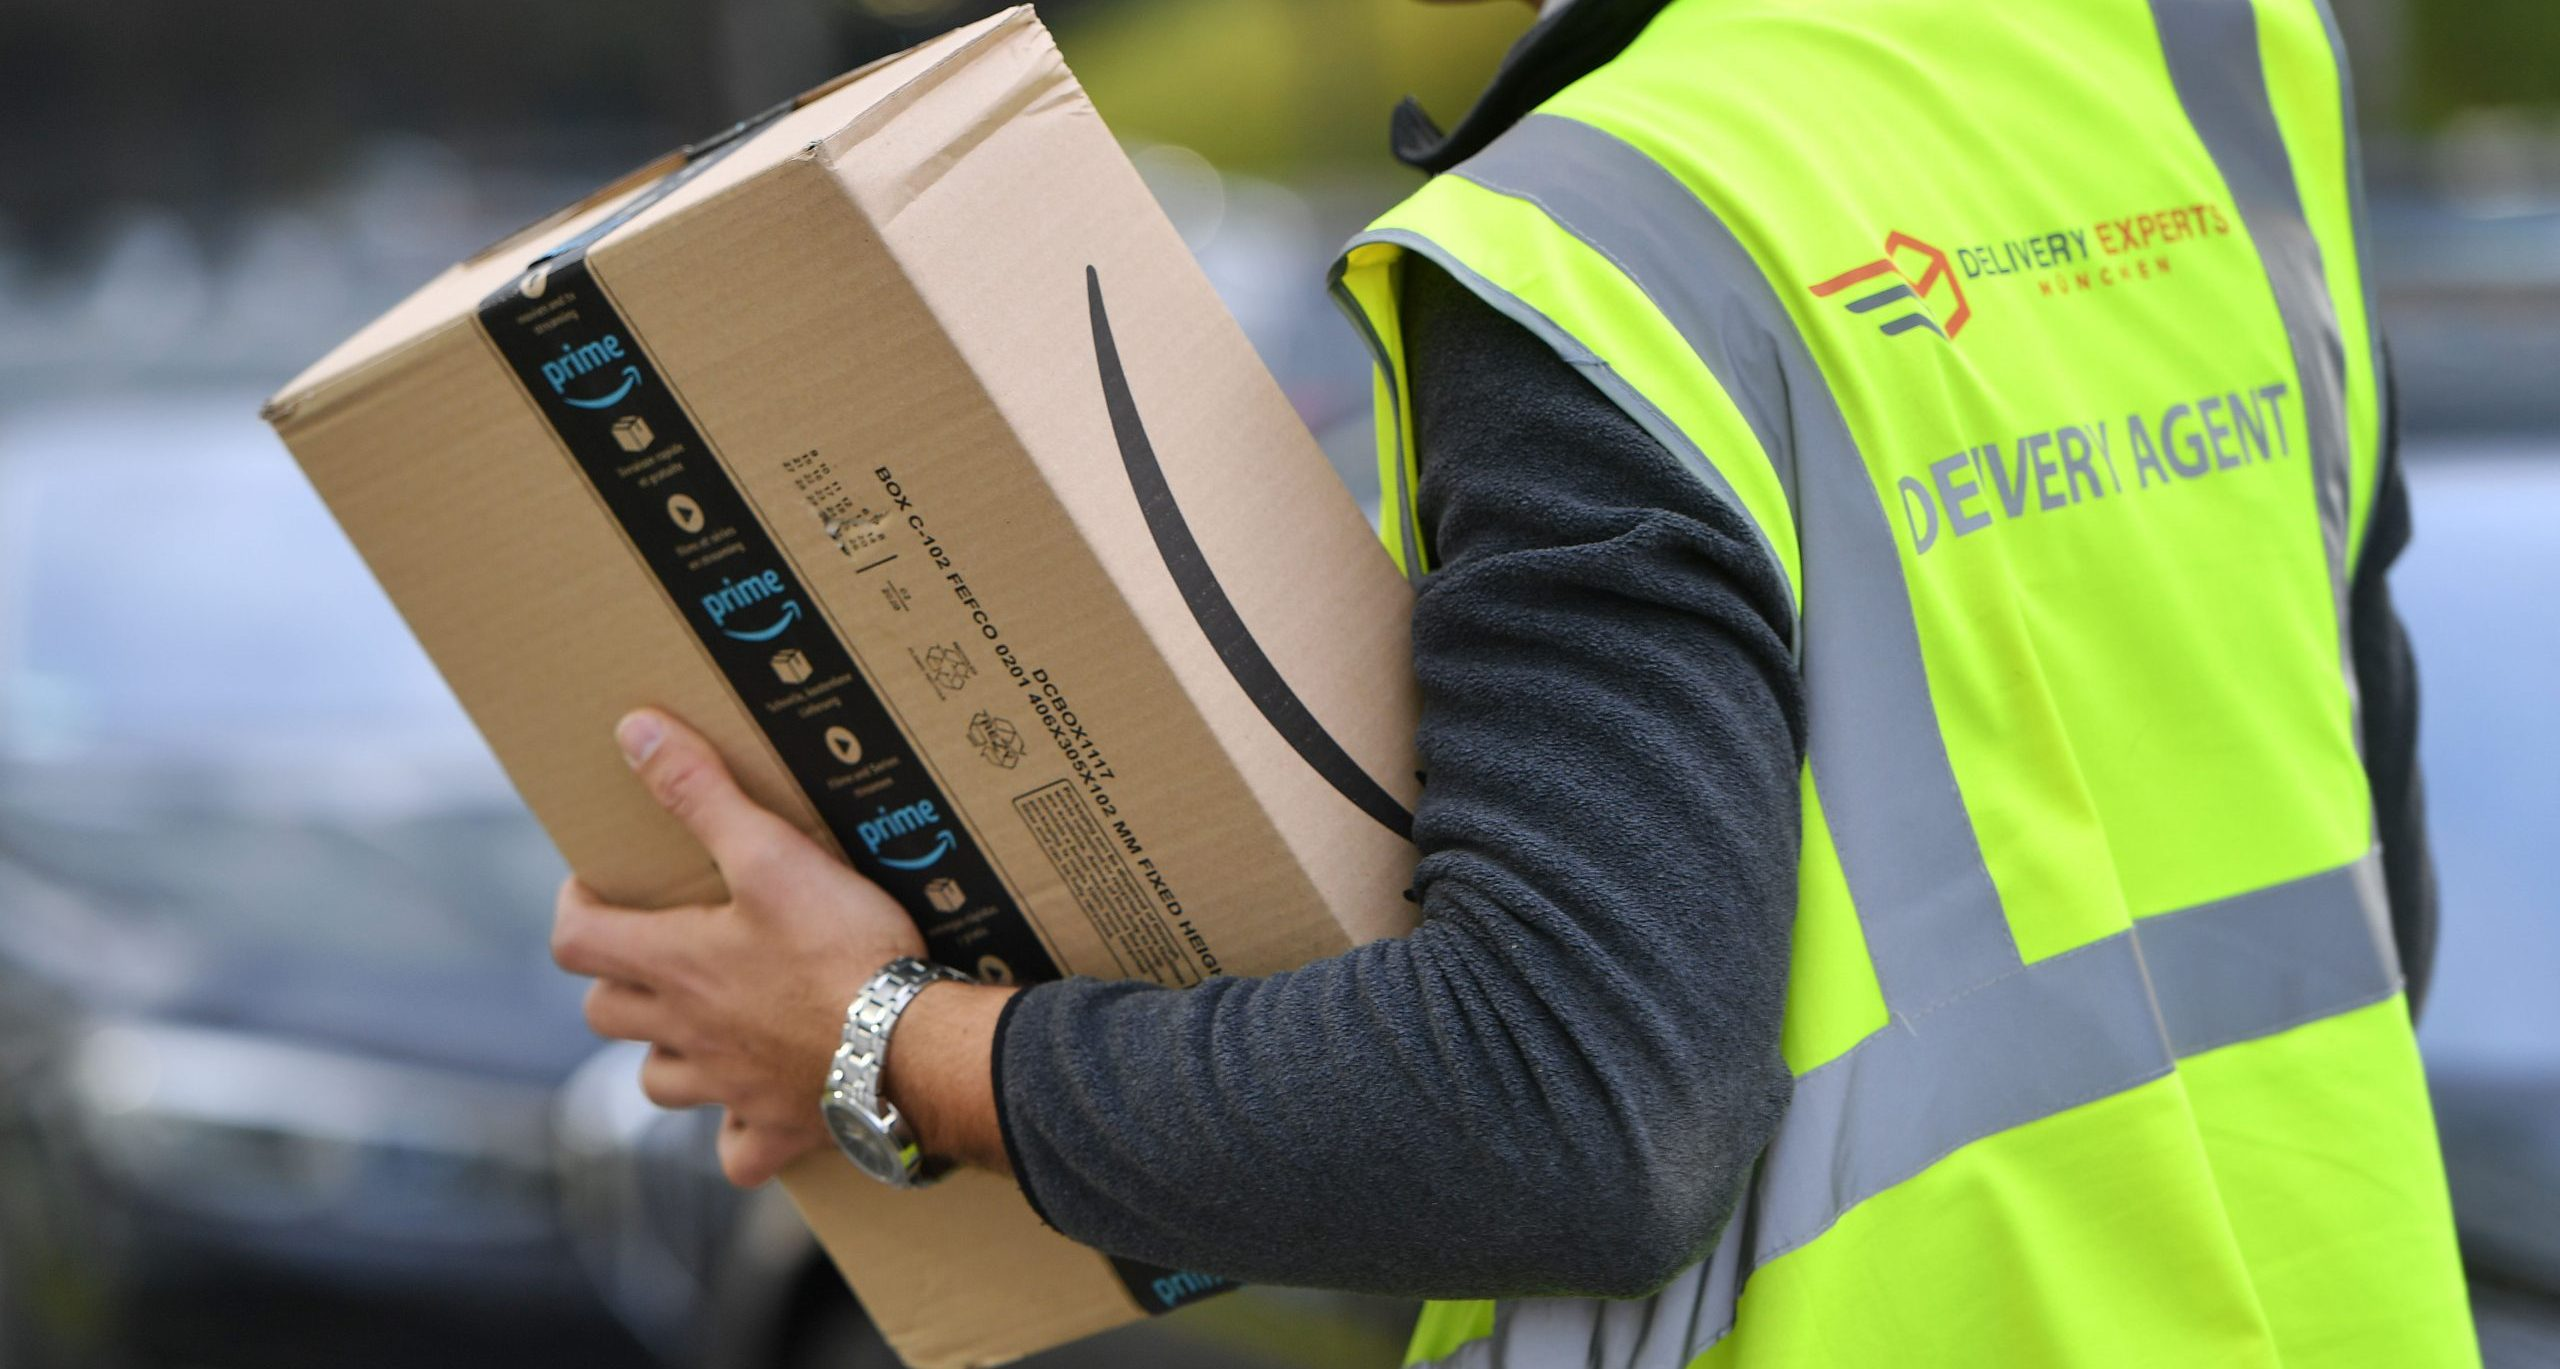 Is Amazon still delivering in the UK? Latest news amid coronavirus fears